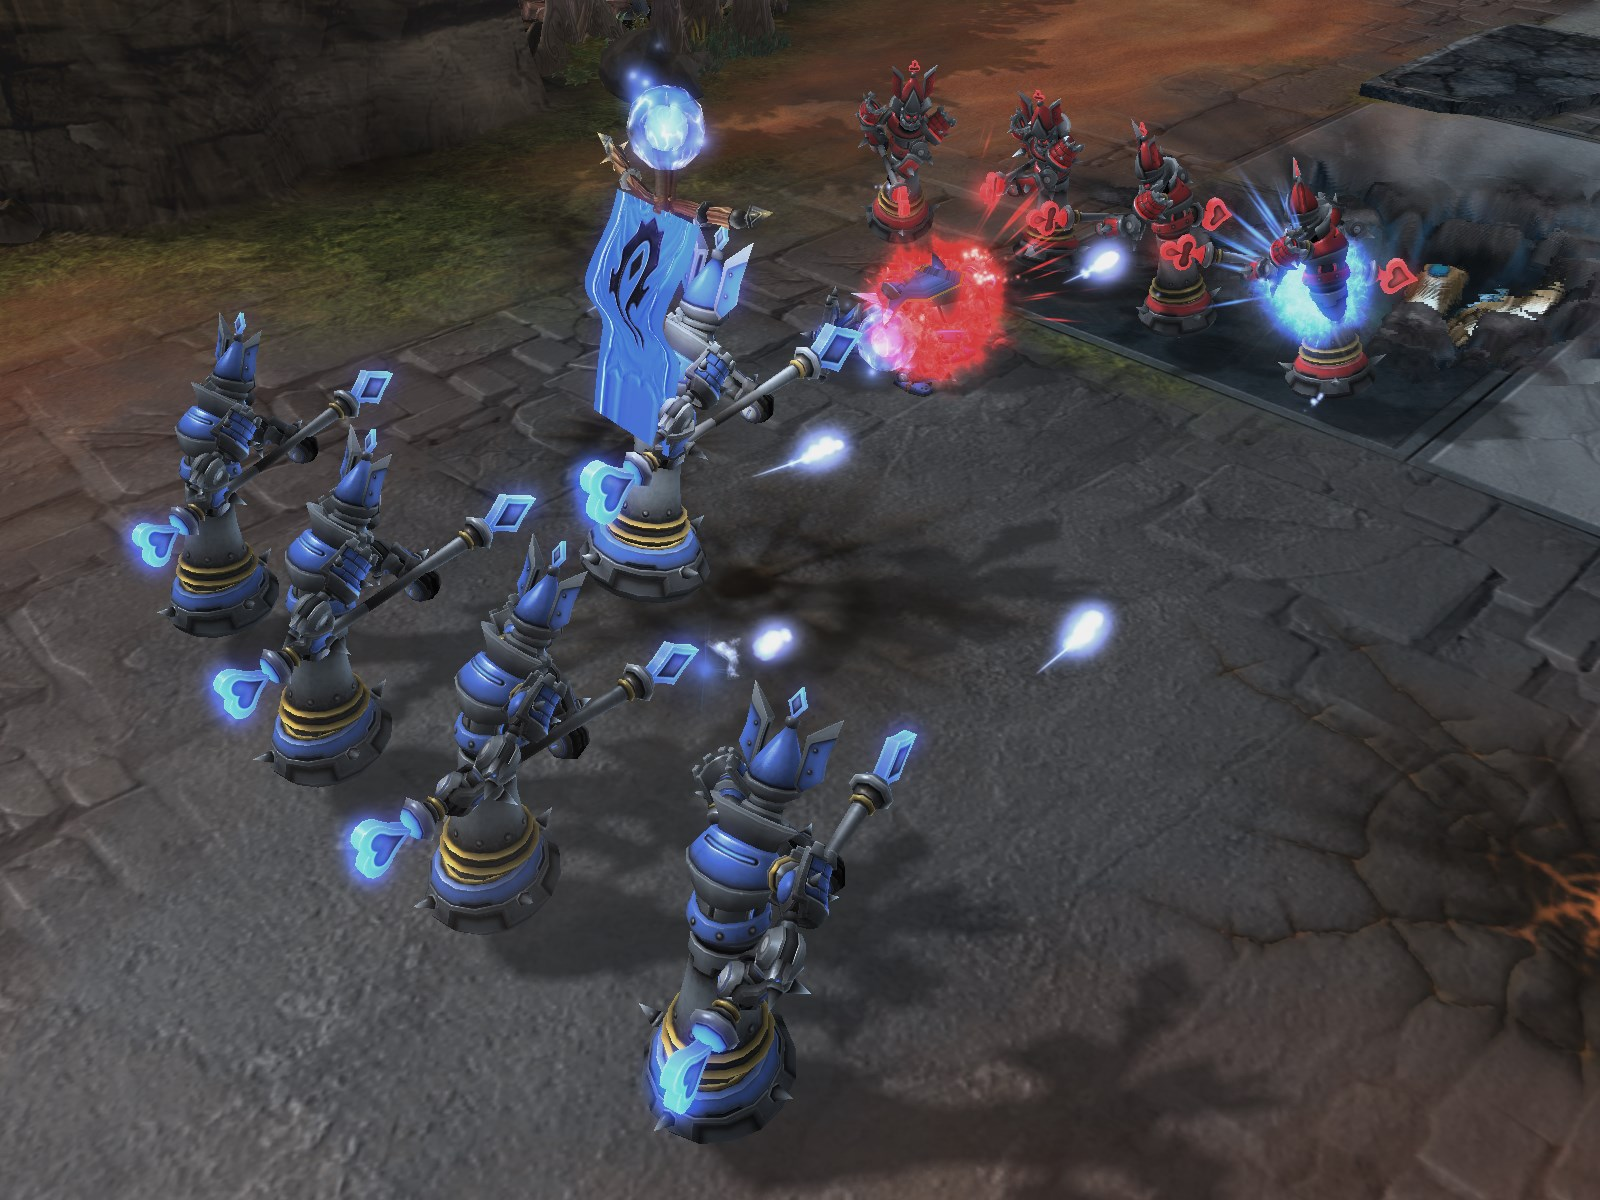 Blizzard Set Out To Make A StarCraft Mod And Instead Reinvented Gamings Most Popular Genre